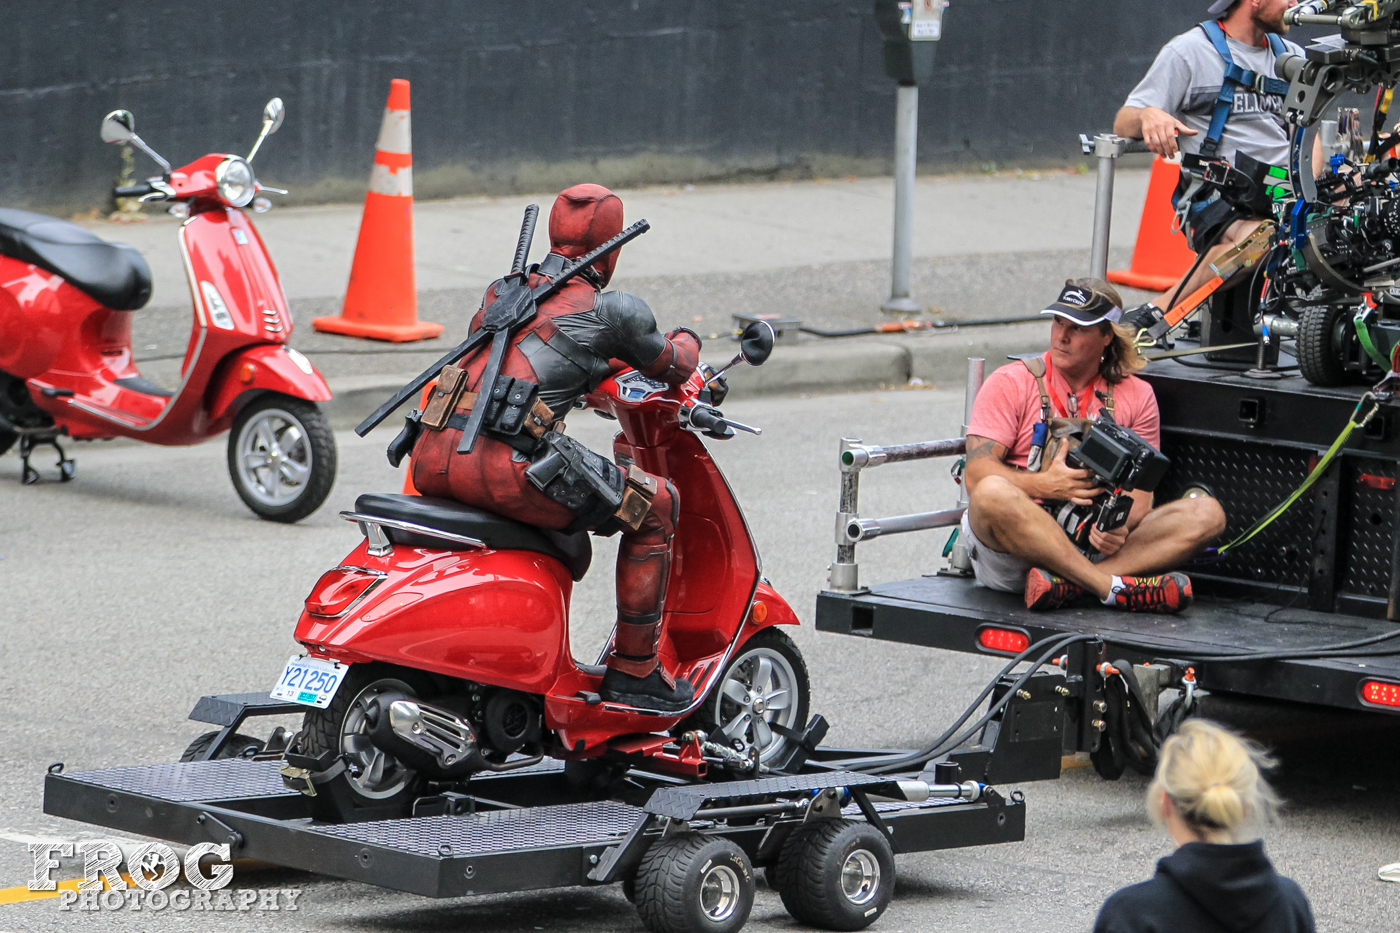 deadpool_2_on_set-1.jpg